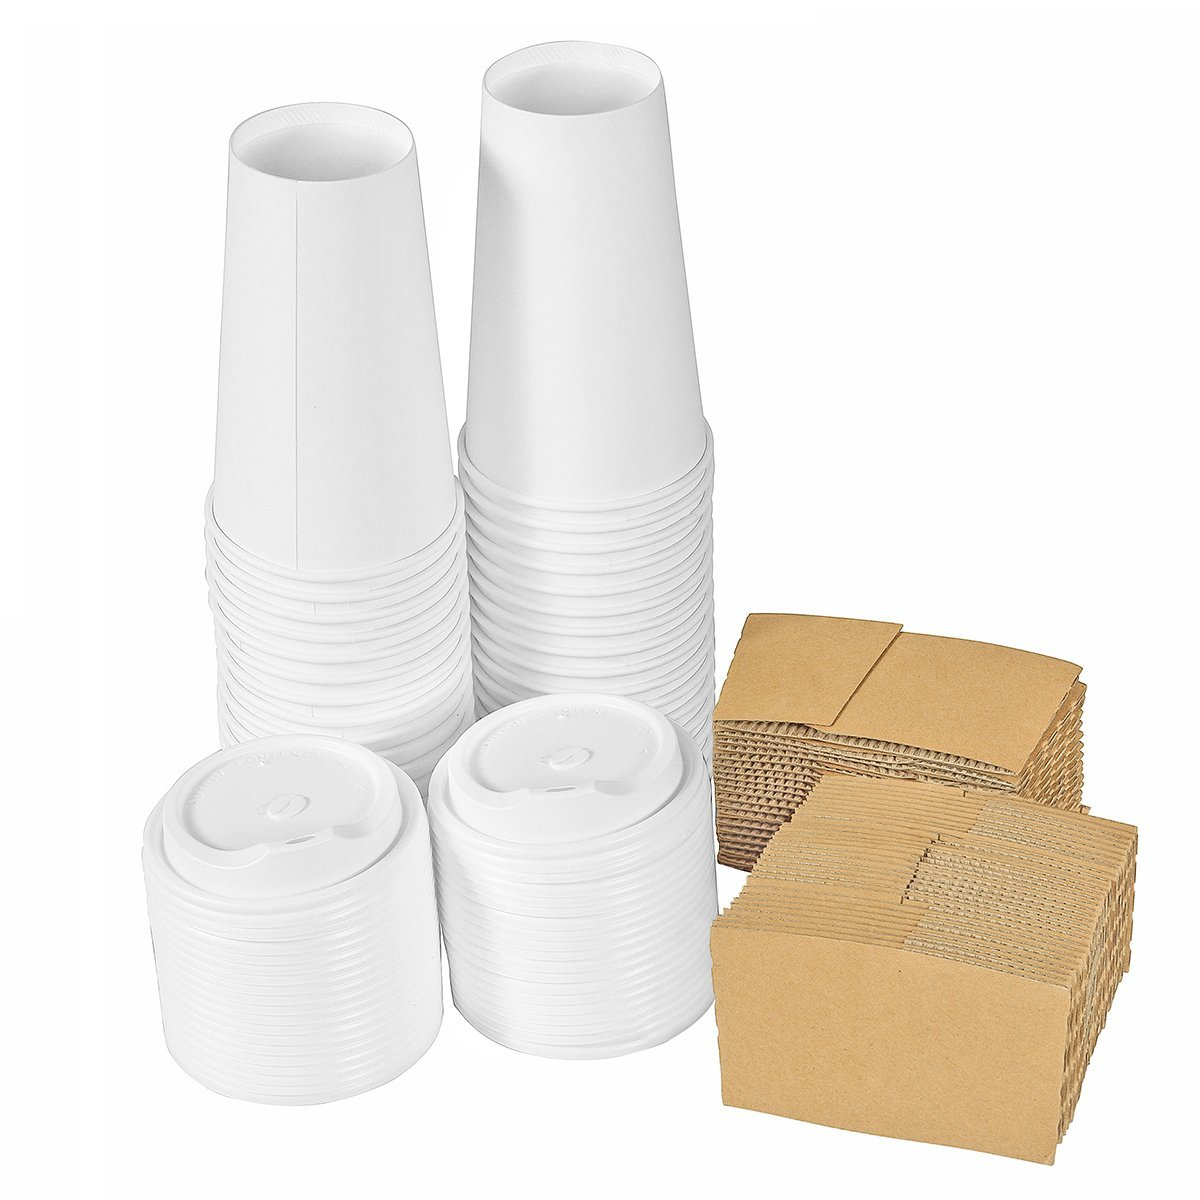 Premium Quality 16 Oz. Disposable White Hot Paper Coffee Cups By PrepStor – 50 Pack Set Complete With Travel Protective Sleeves & Lids – Perfect For Take Away, Office Use, Bars & Coffee Shops